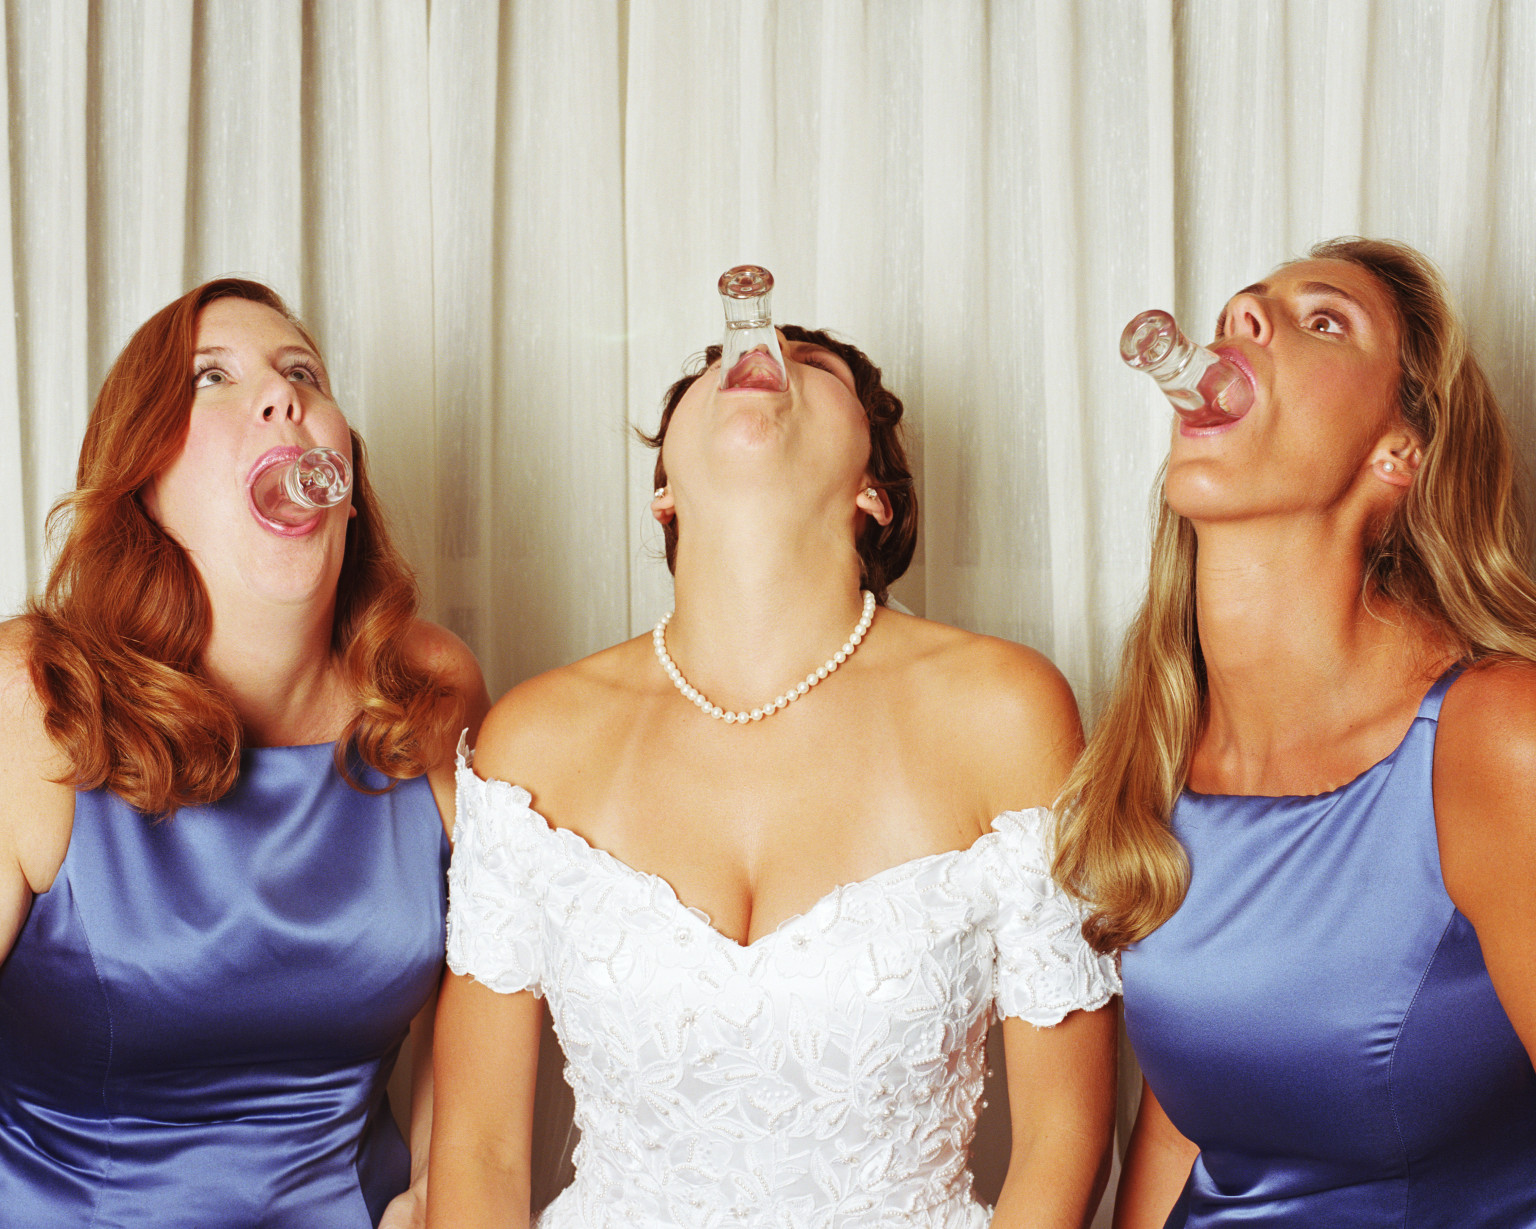 Drunk Wedding Drunk Wedding Stories You